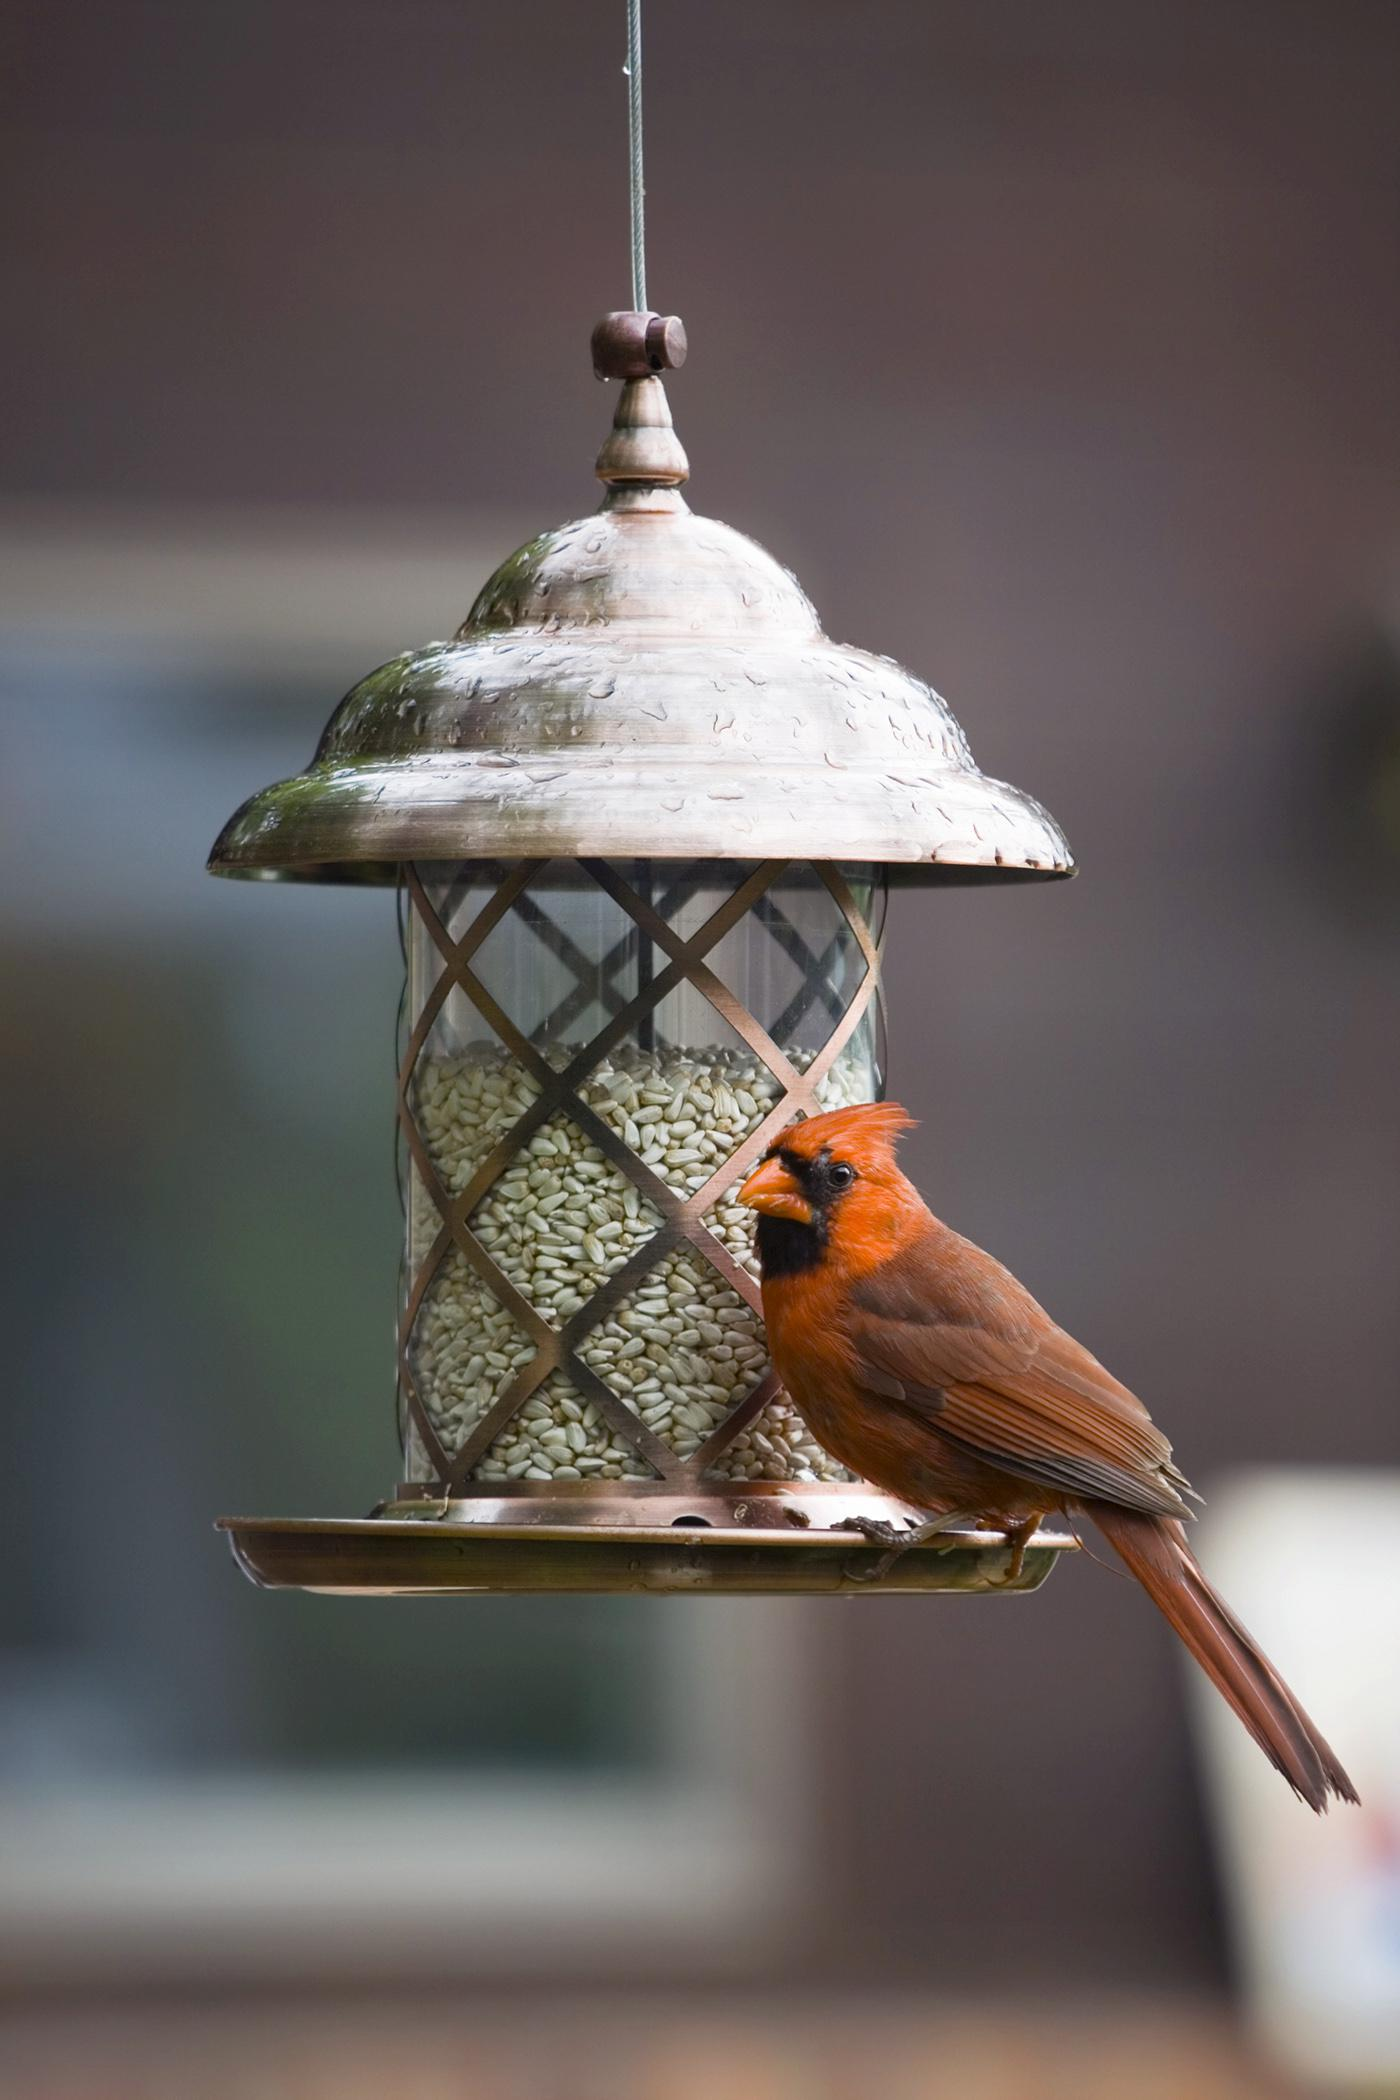 Winter's chill presents a perfect opportunity for bird watching at feeders set up to accommodate feathered guests. (File photo)